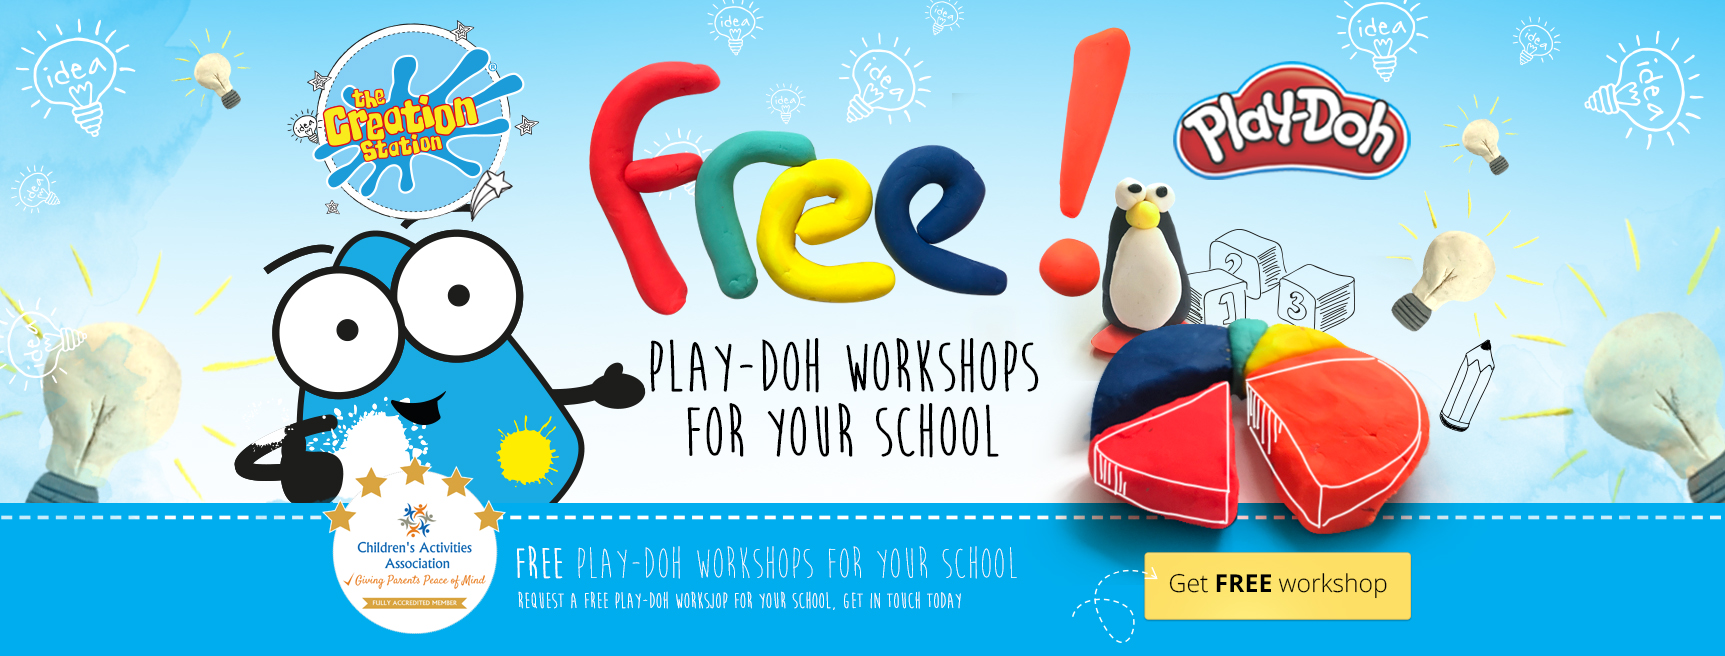 Free Creation Station Play-Doh workshops for schools